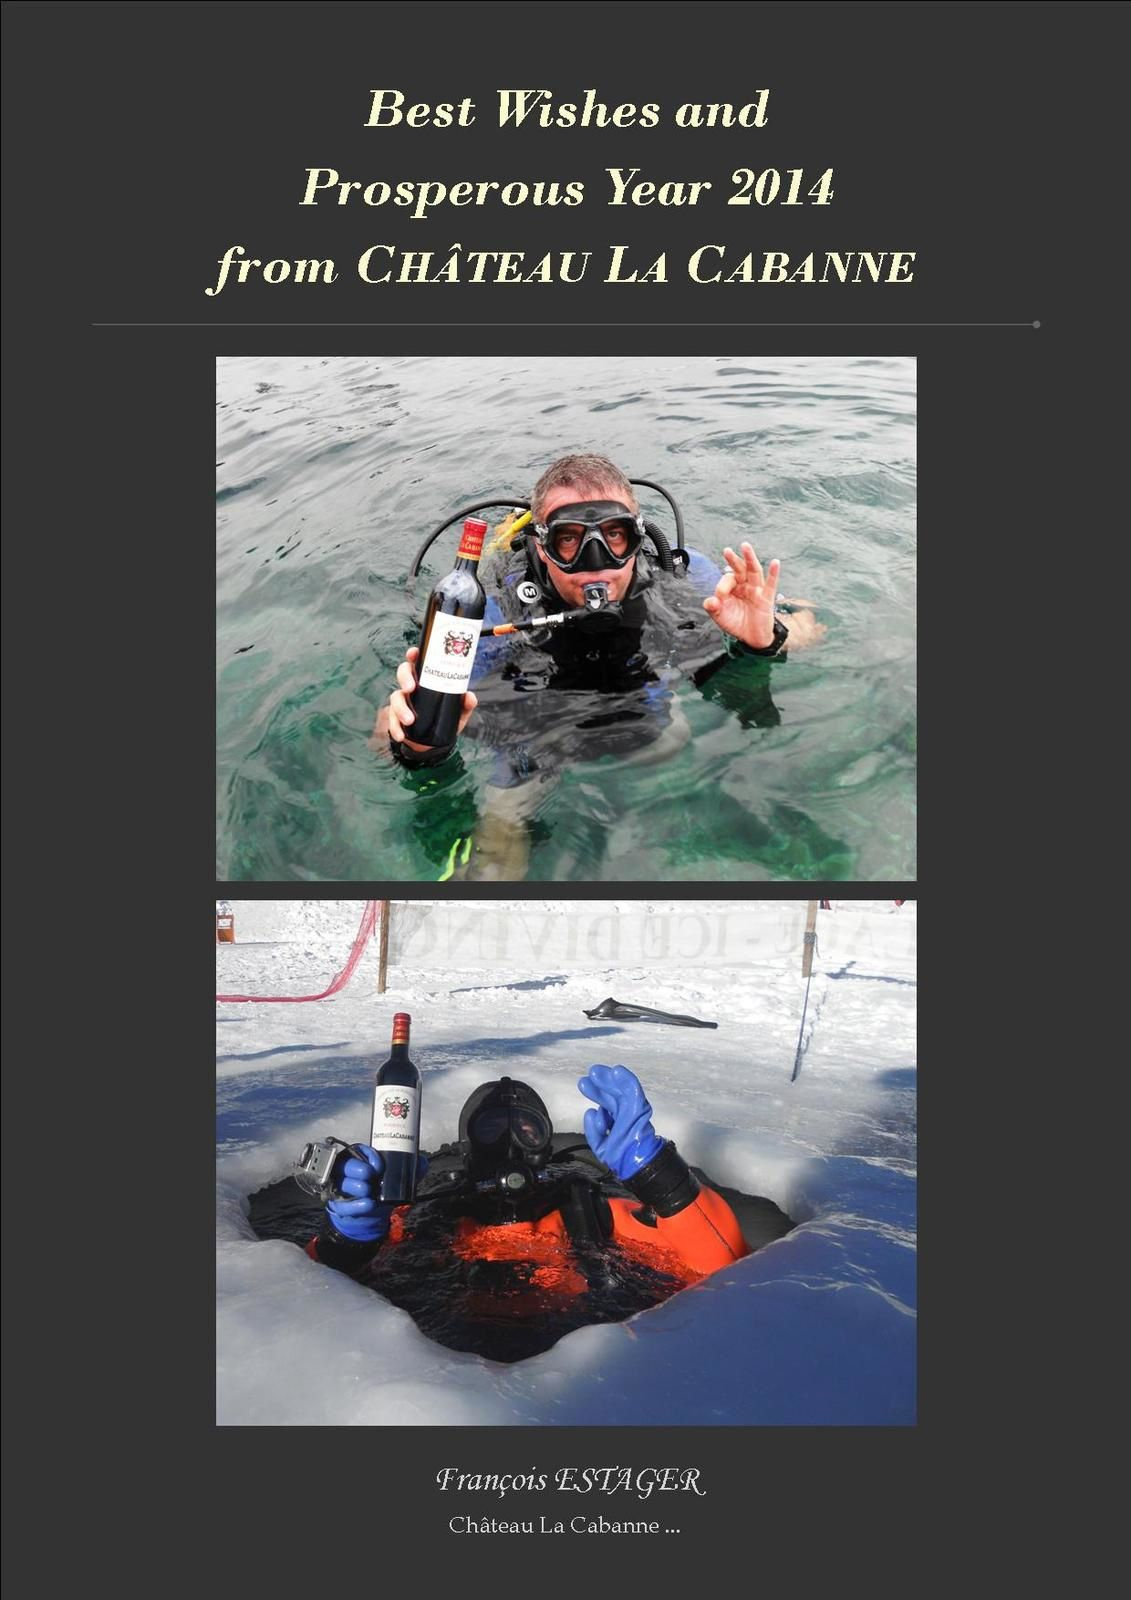 Picture 1 : Sea diving in Corsica - France.              Picture 2 : Ice diving in Tignes - Alps - France